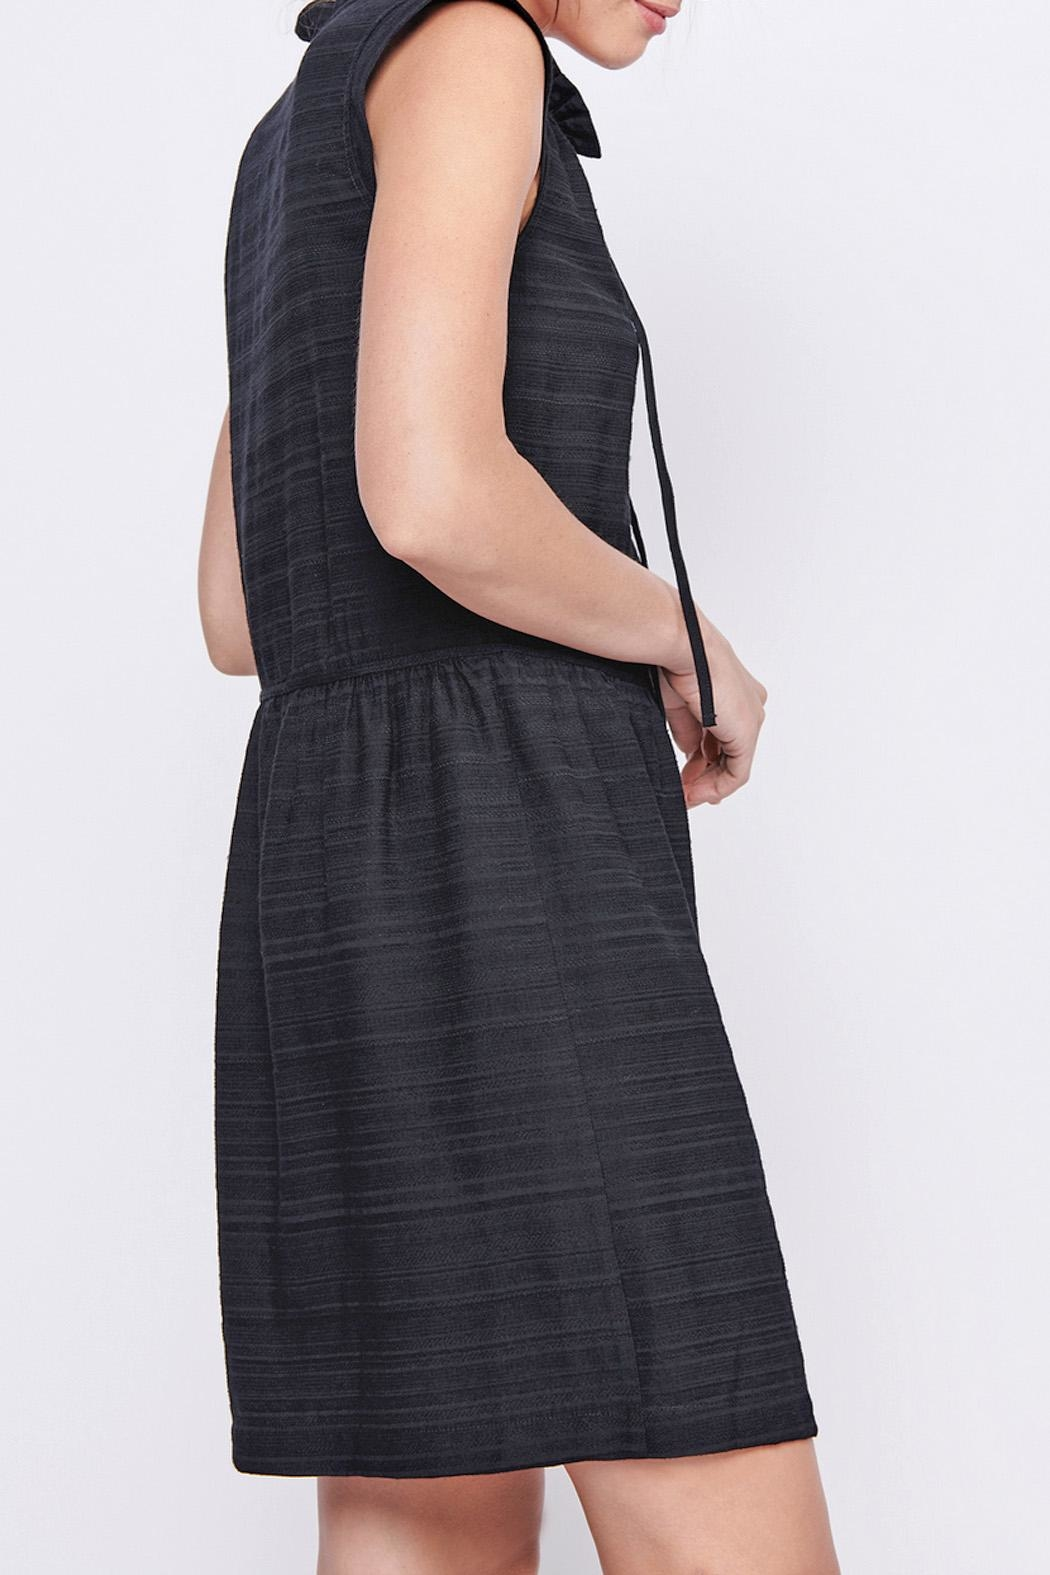 Cotelac Piper Black Dress - Side Cropped Image